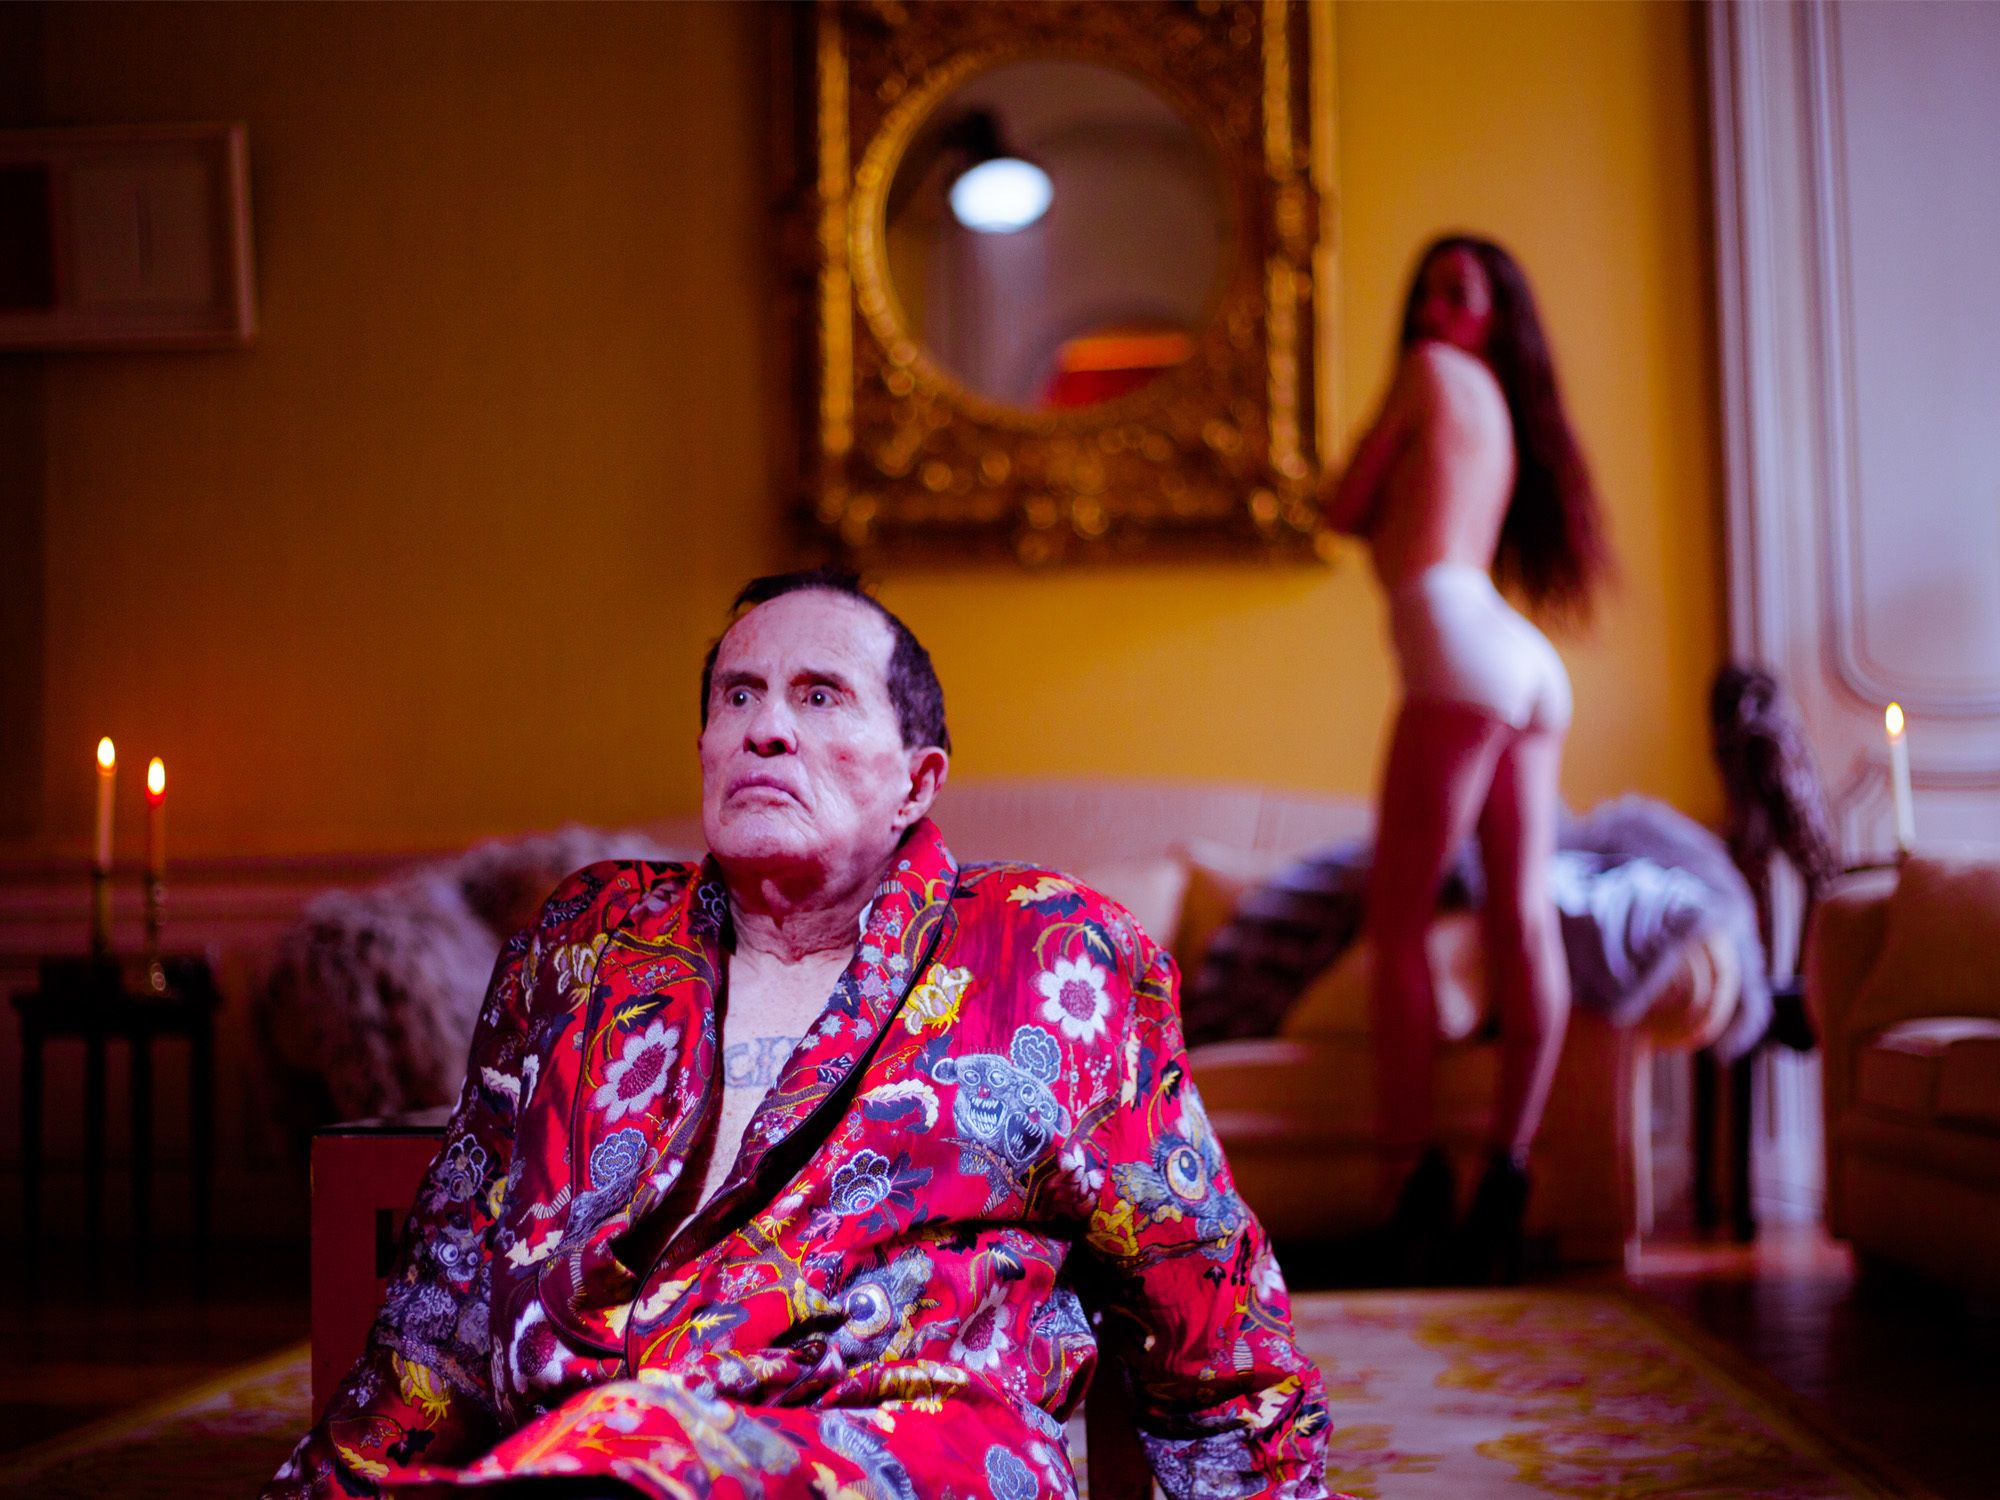 Kenneth Anger: Where The Bodies Are Buried